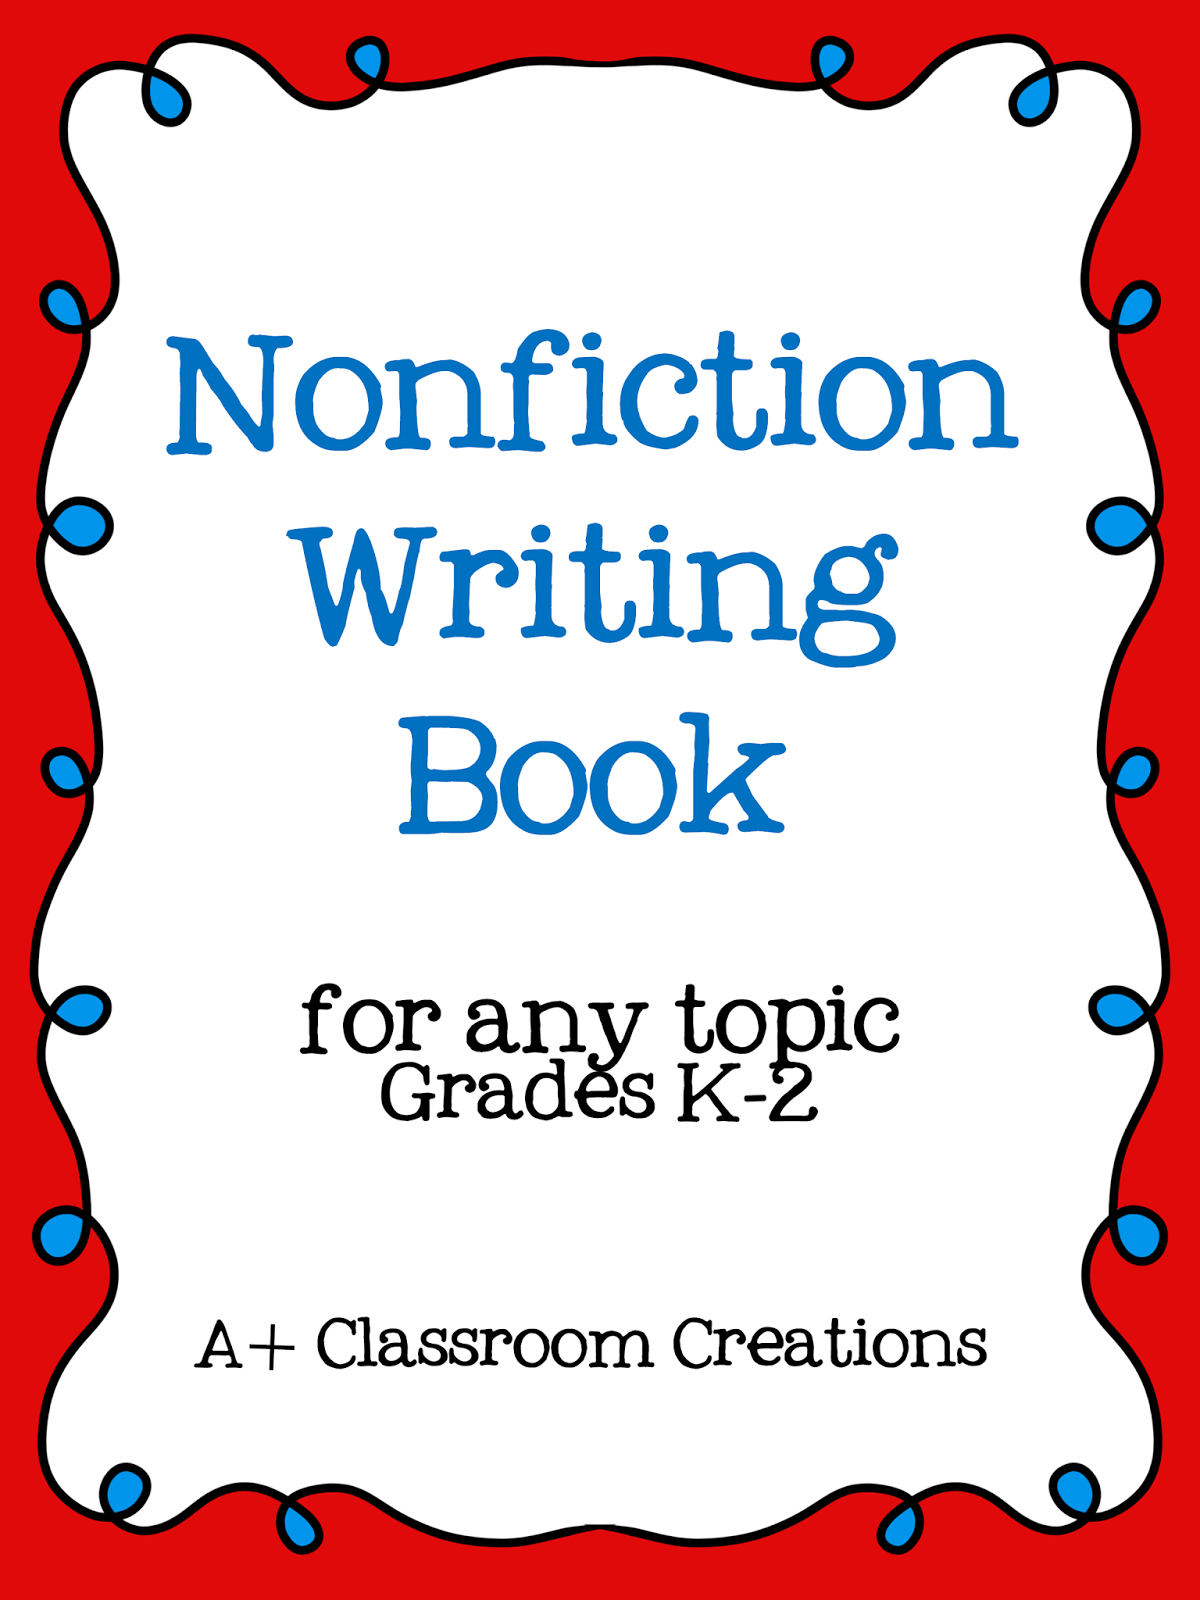 http://www.teacherspayteachers.com/Product/Nonfiction-Writing-Book-714466